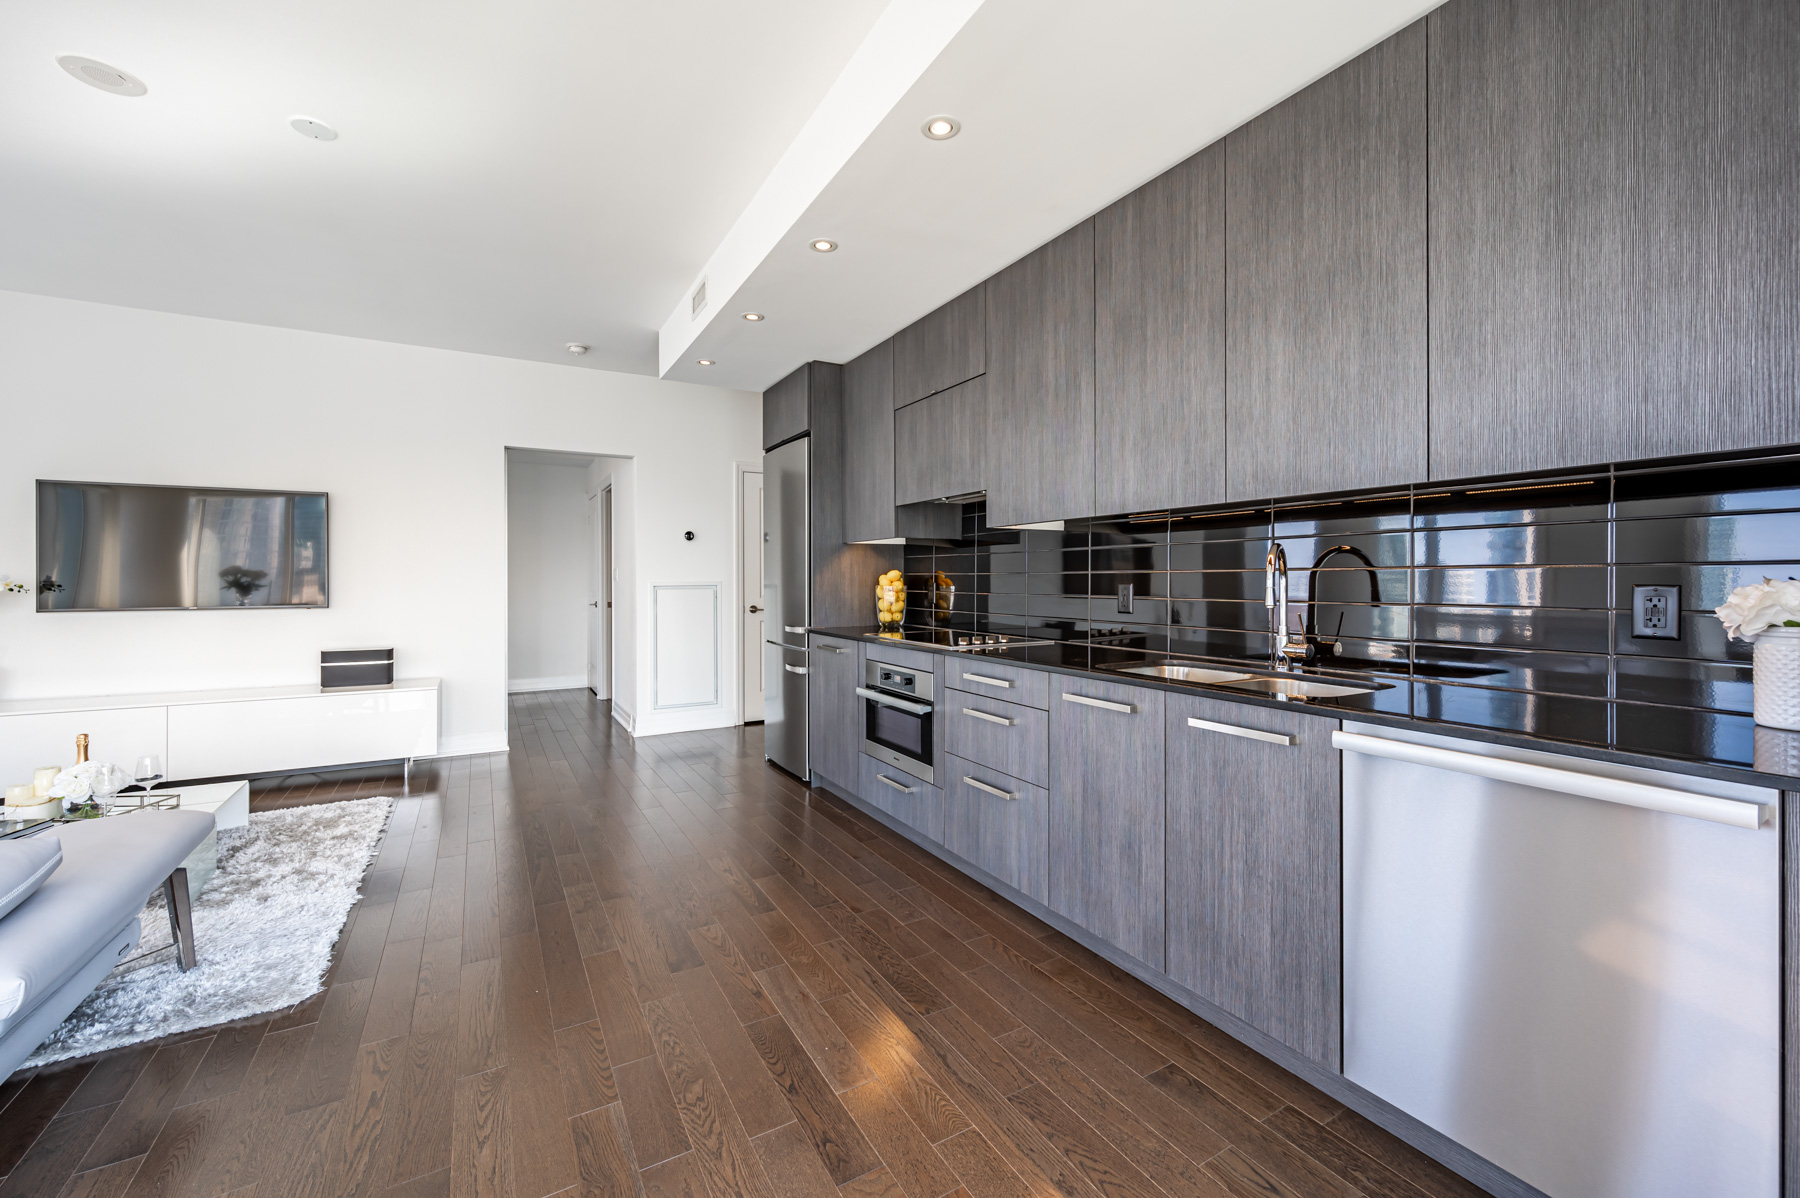 Long condo kitchen with several big cabinets and drawers.